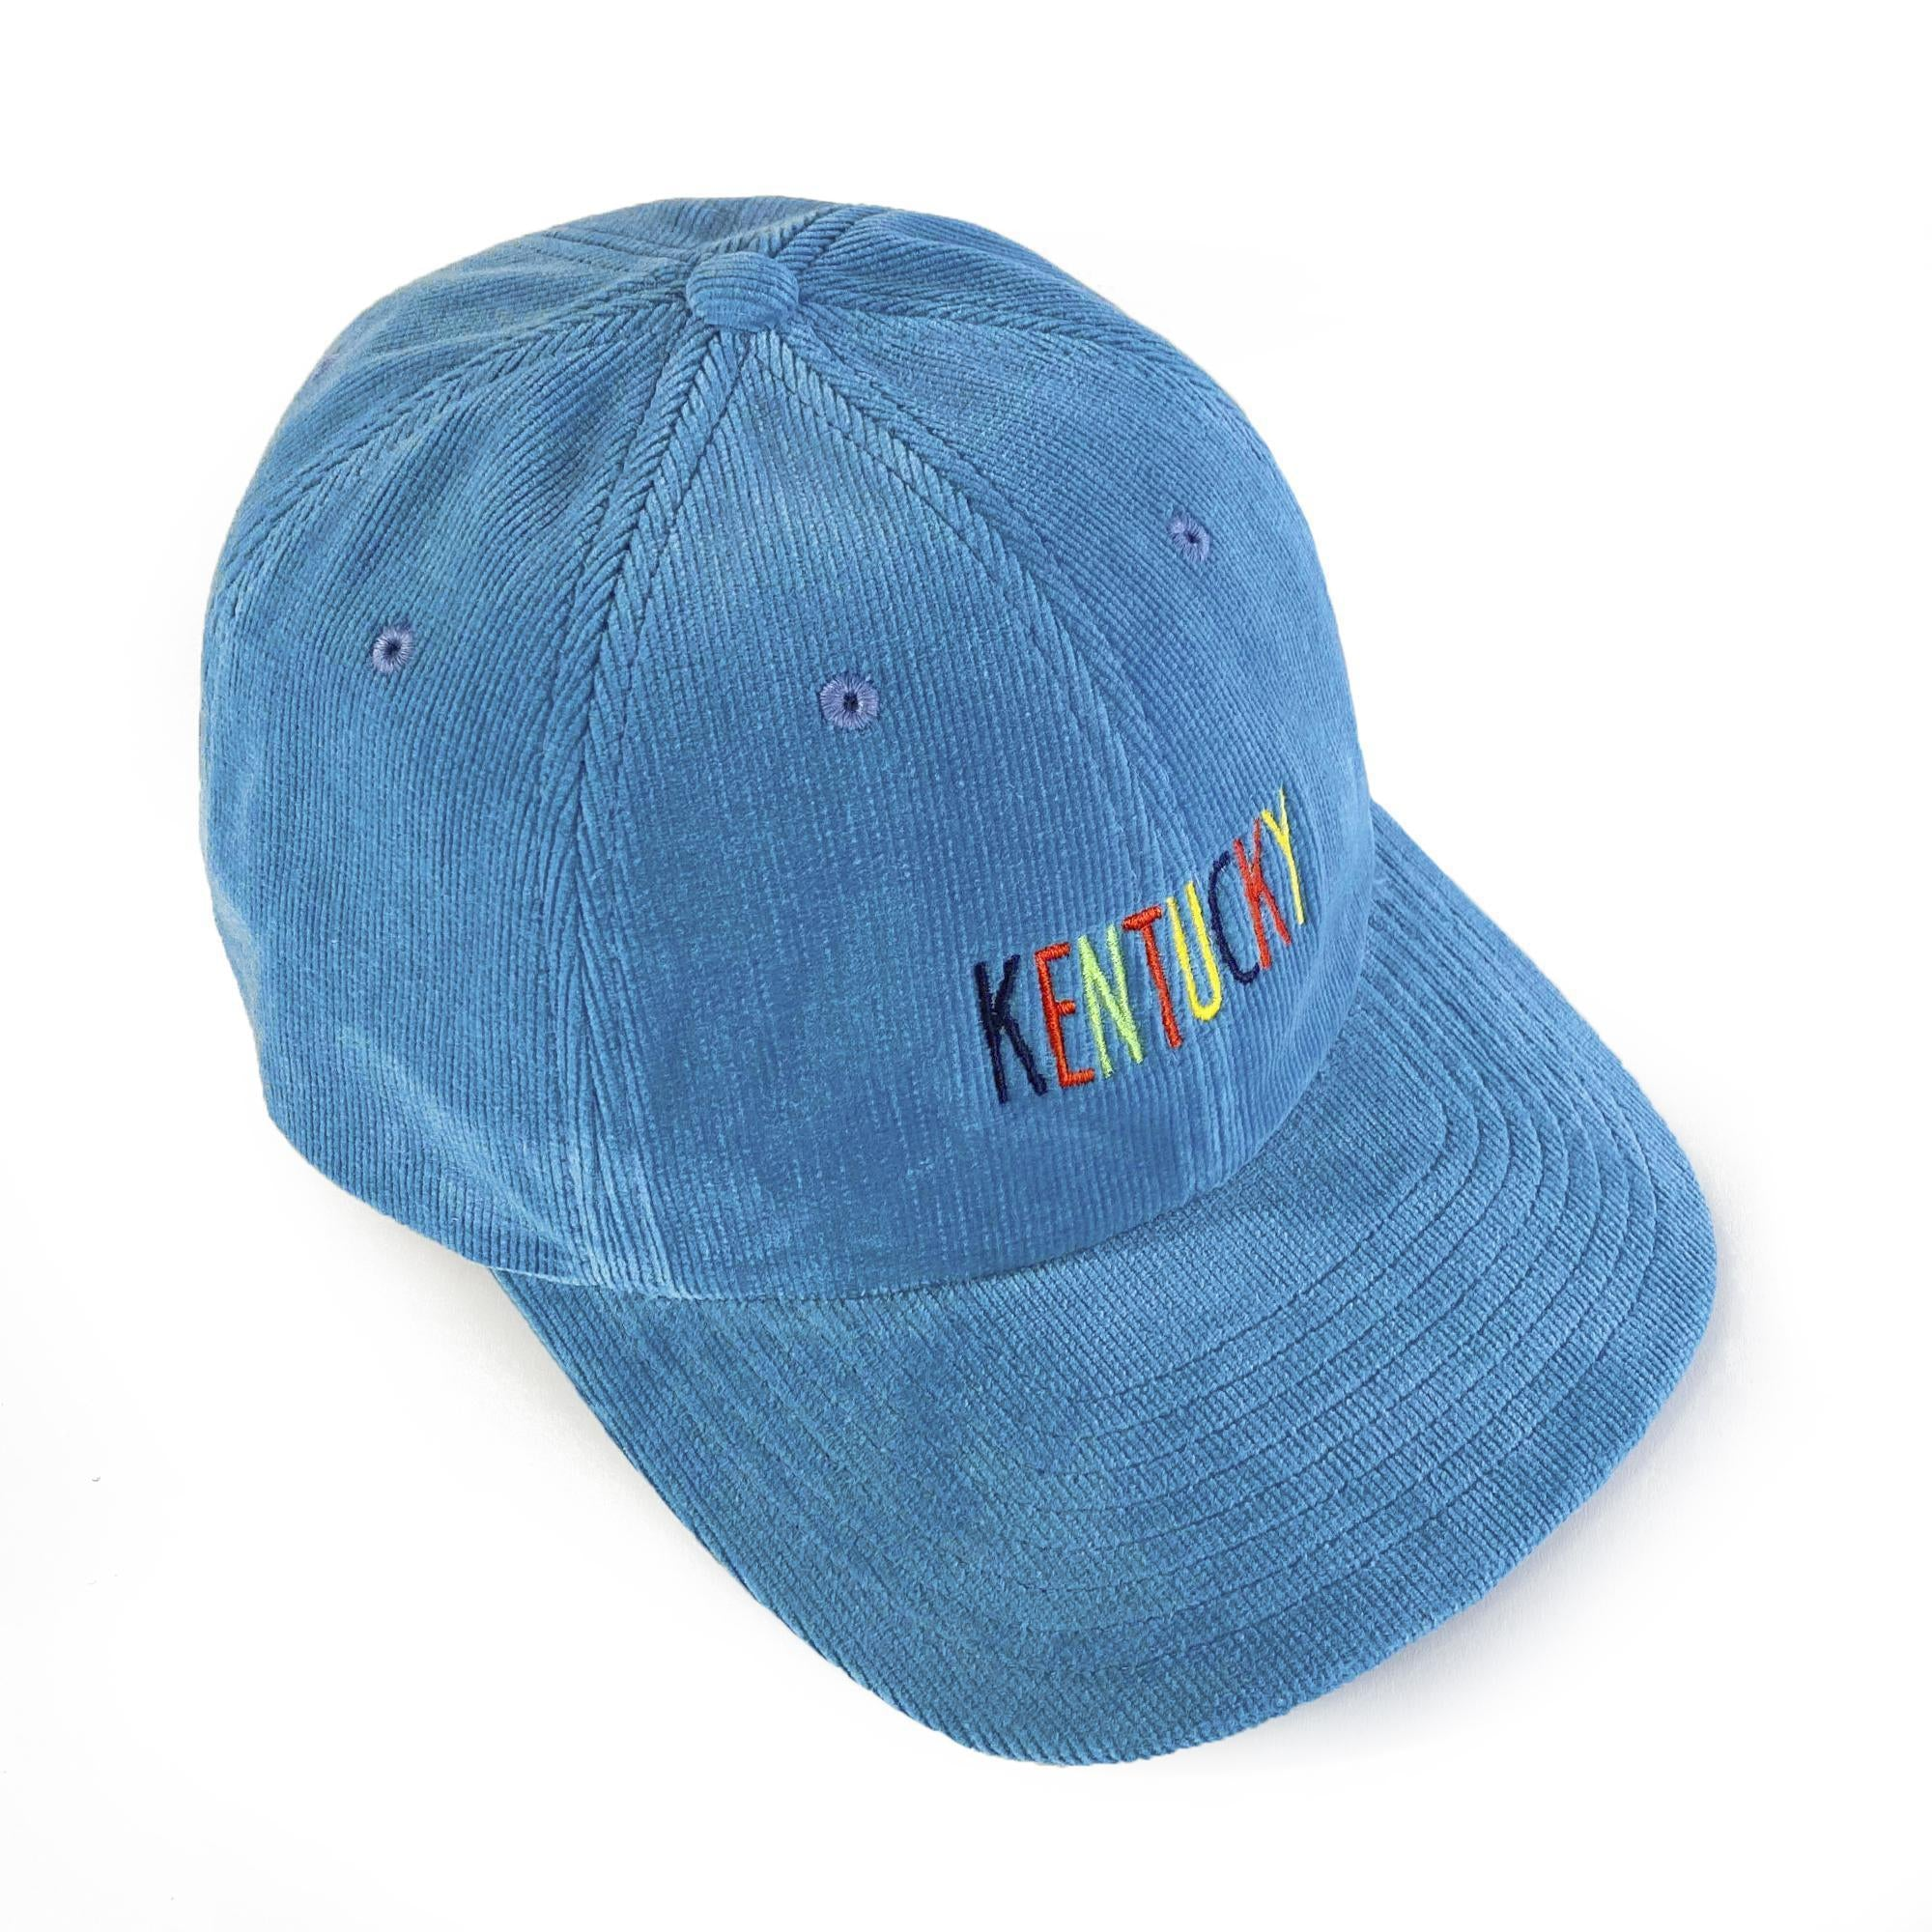 Kentucky Corduroy Dad Hat (Lt. Blue)-Hat-KY for KY Store